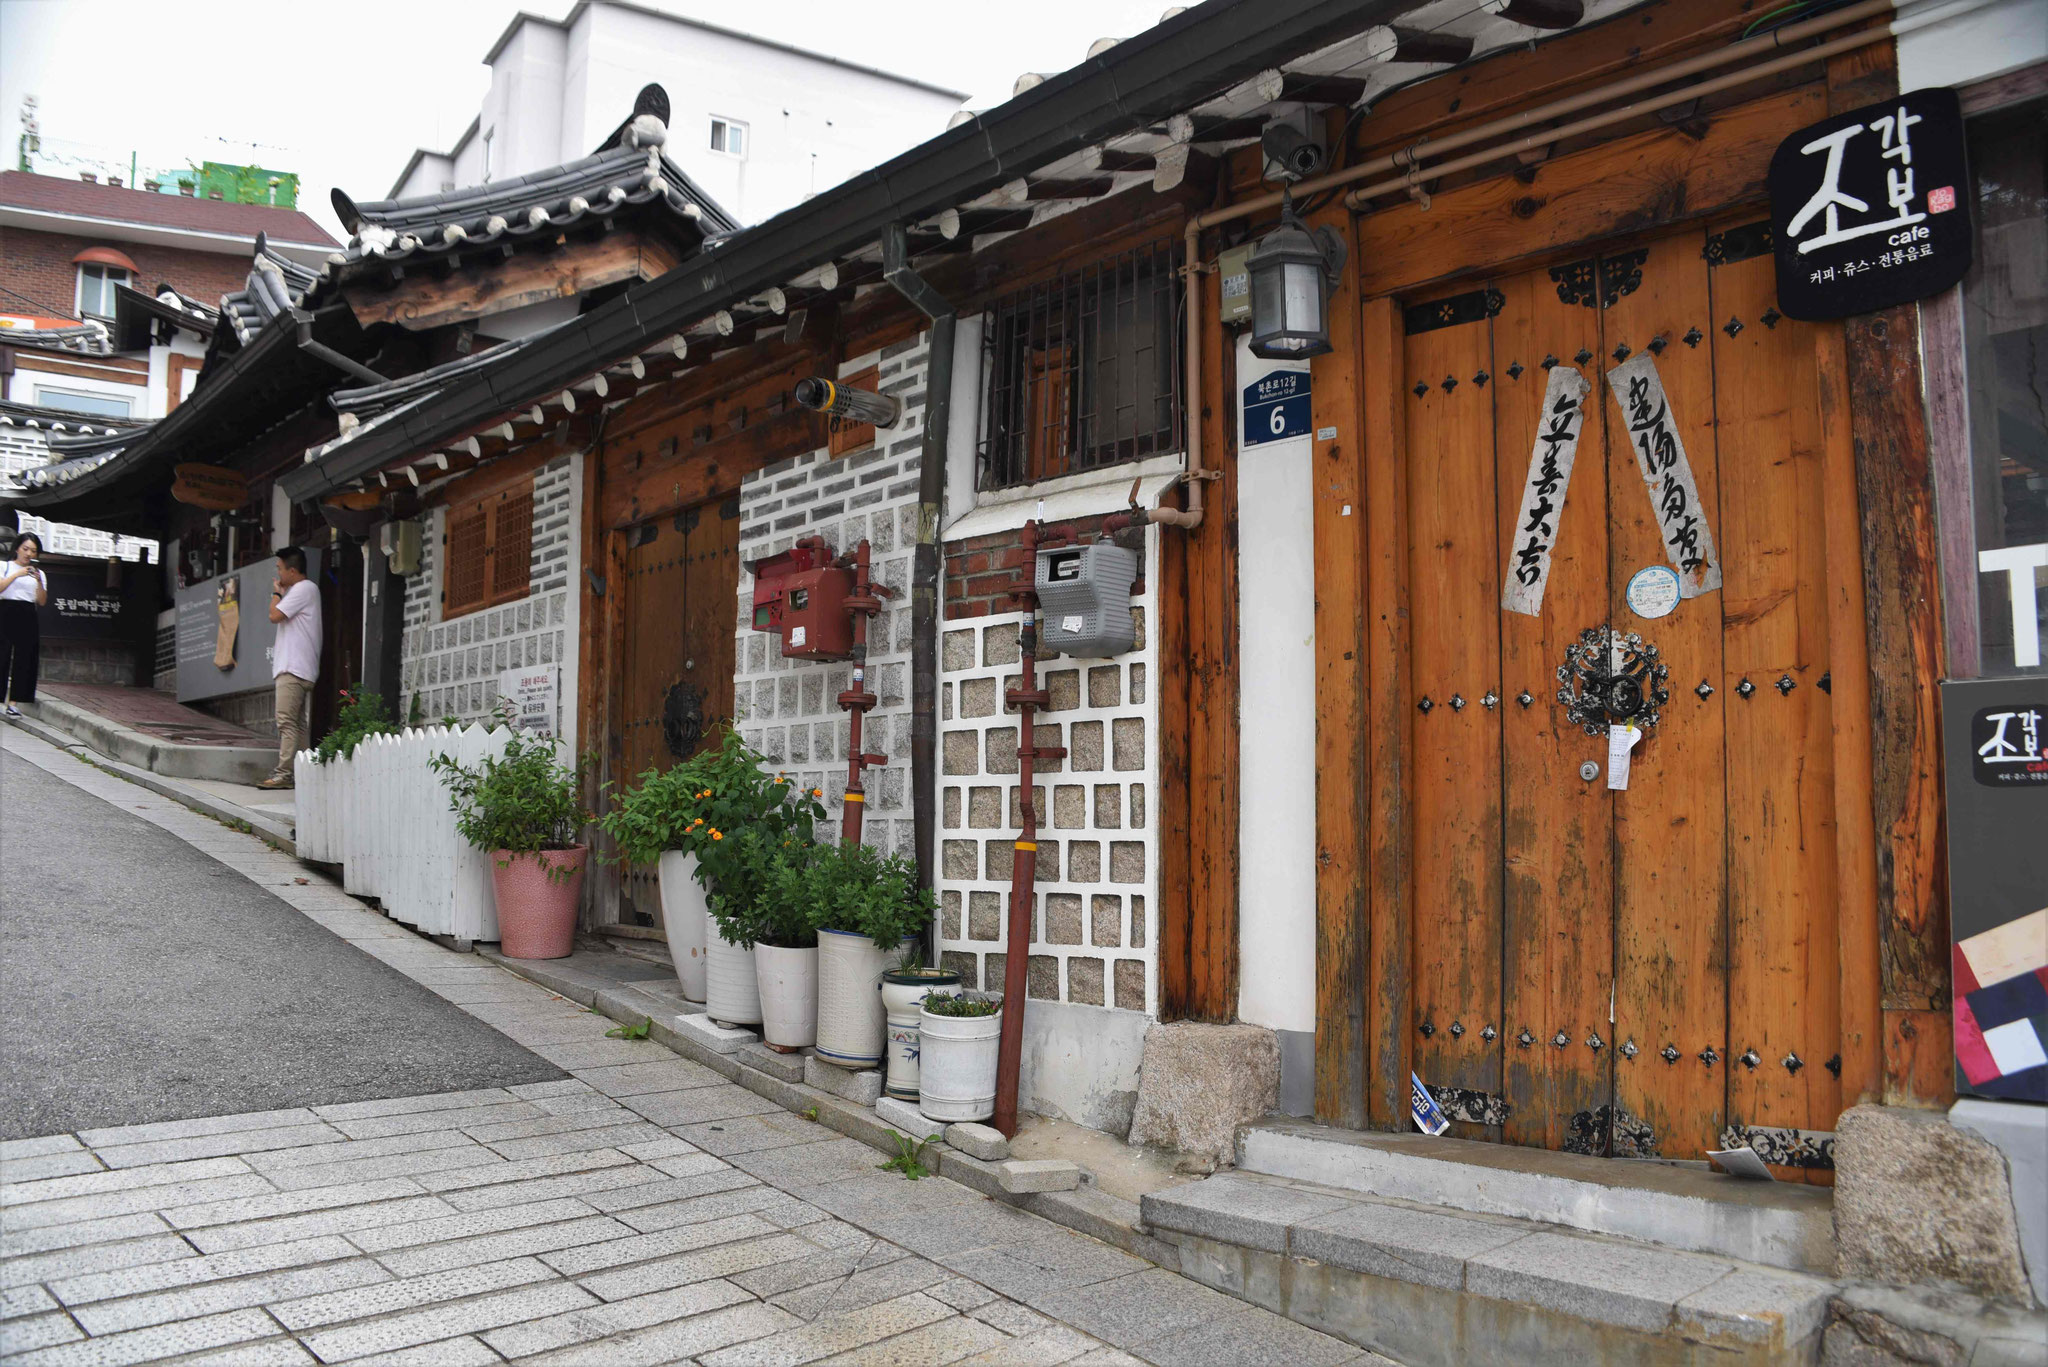 Straße in Bukchon Hanok Village